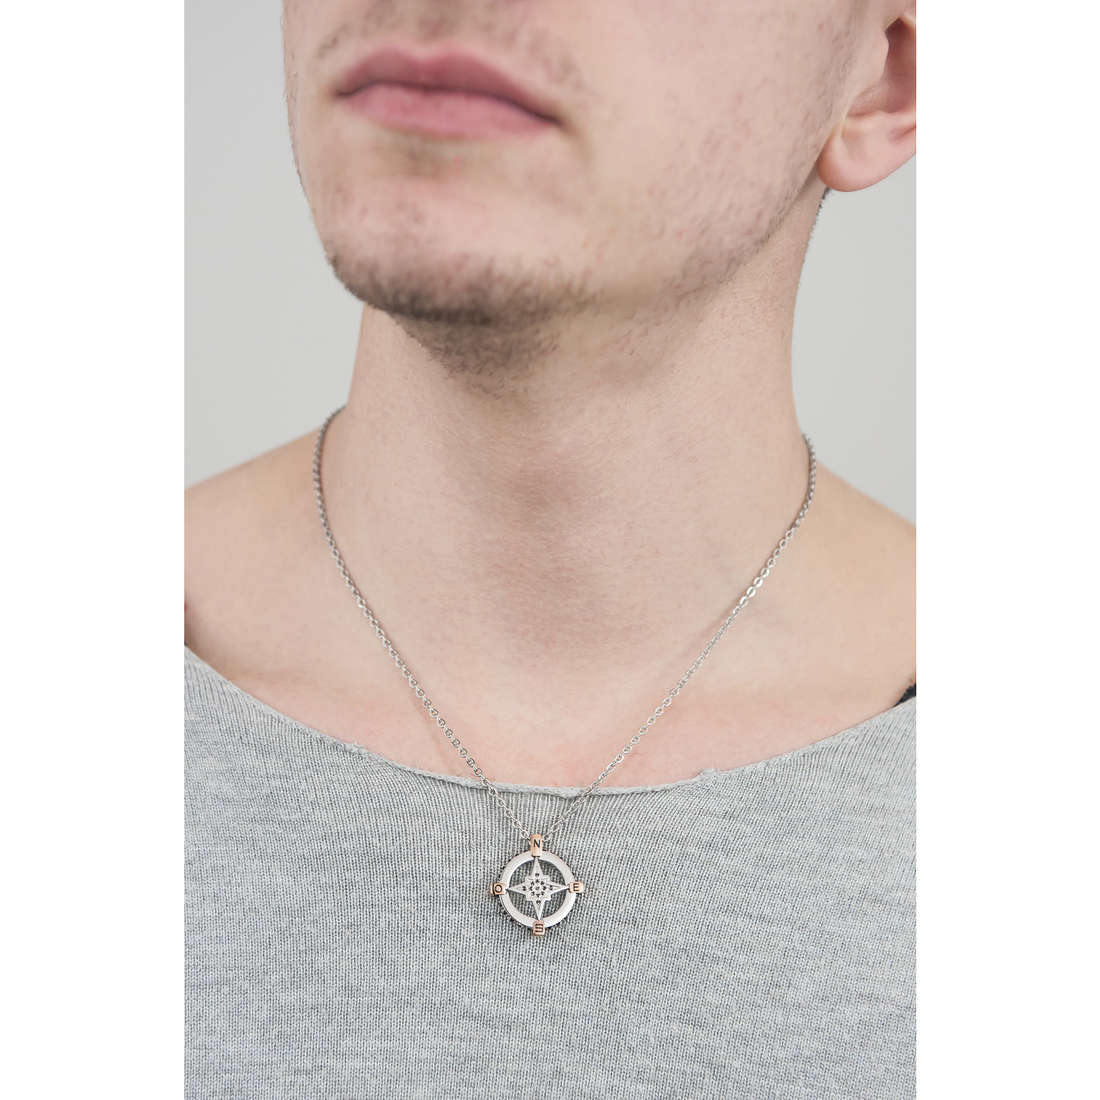 Sector necklaces Marine man SLI06 indosso